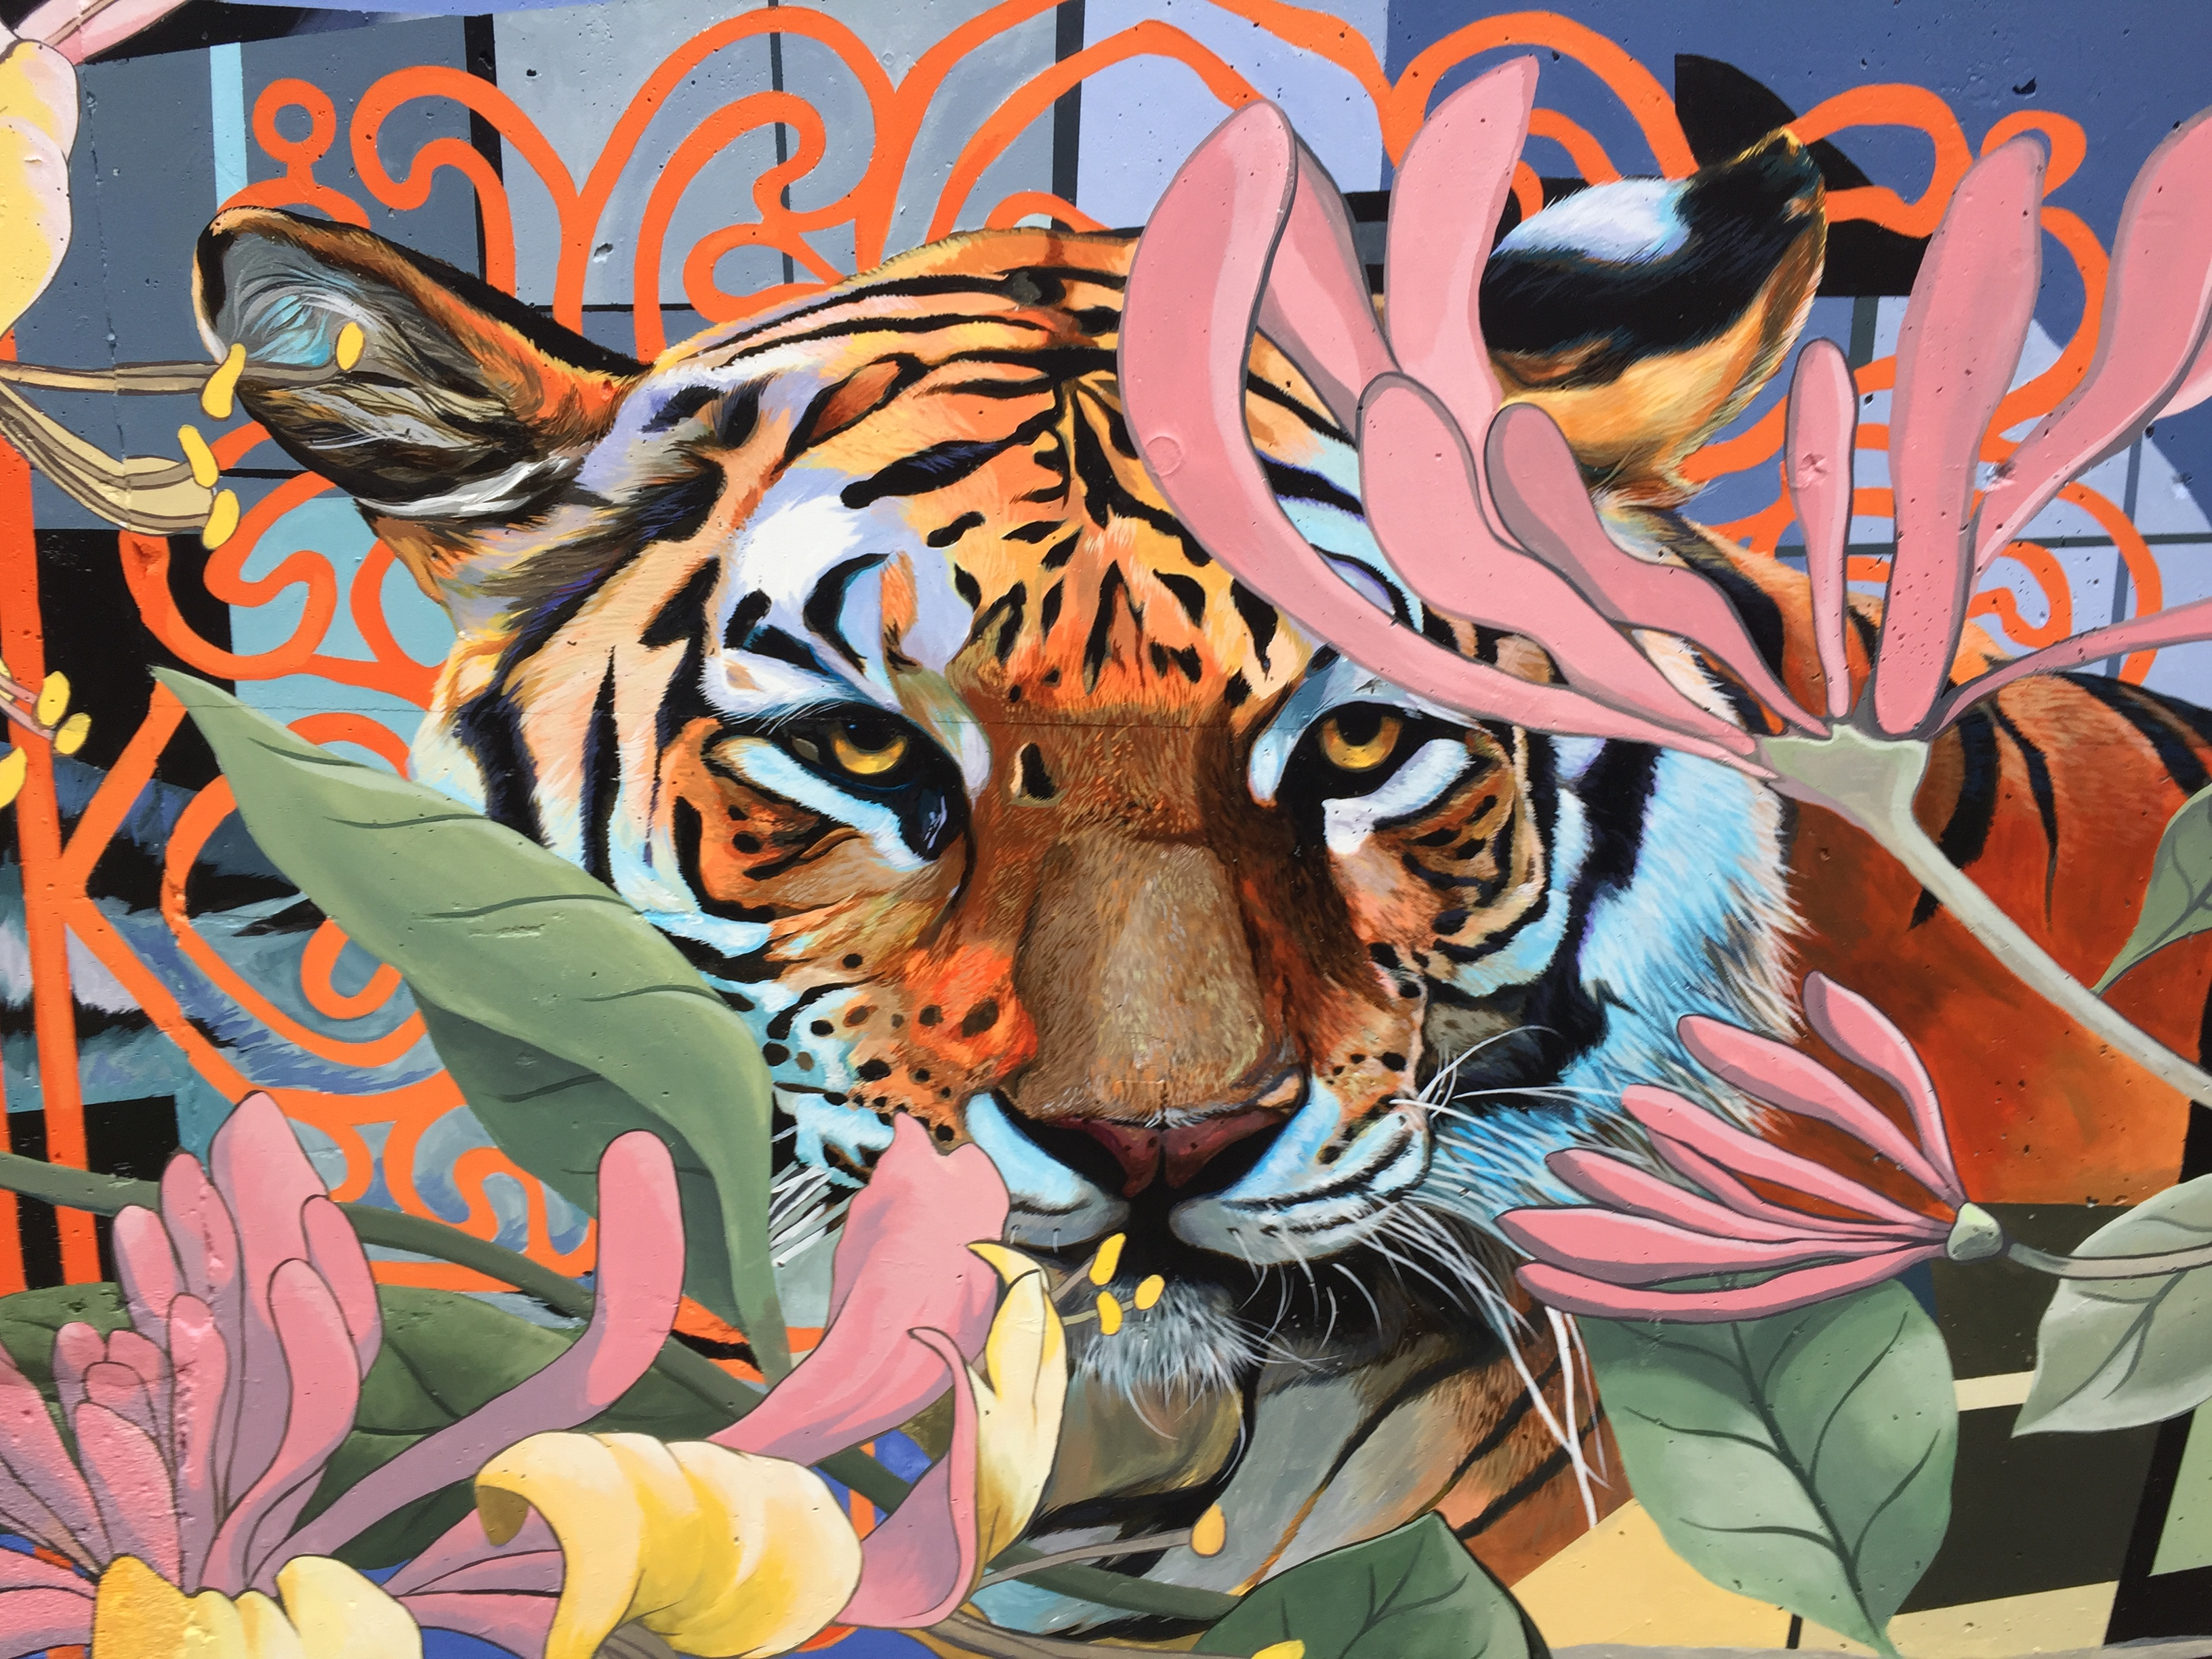 A photorealistic painting of a tiger is surrounded by faded pink and yellow flowers. In the background, an organic orange line pattern surrounds the head of the tiger.